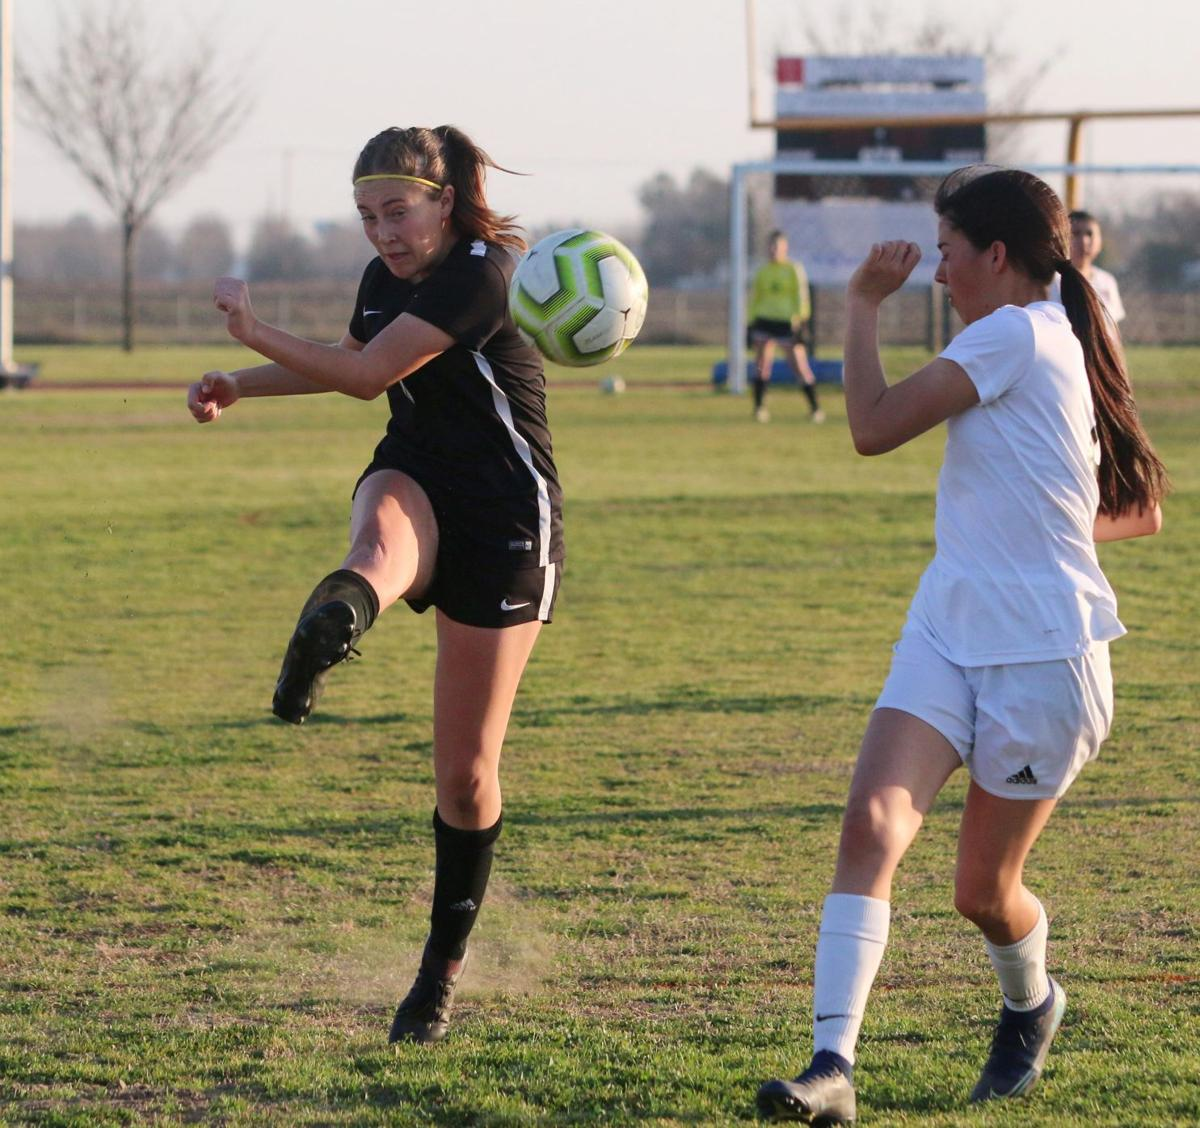 Sizemore's goal lifts Sierra Pacific in quarterfinals